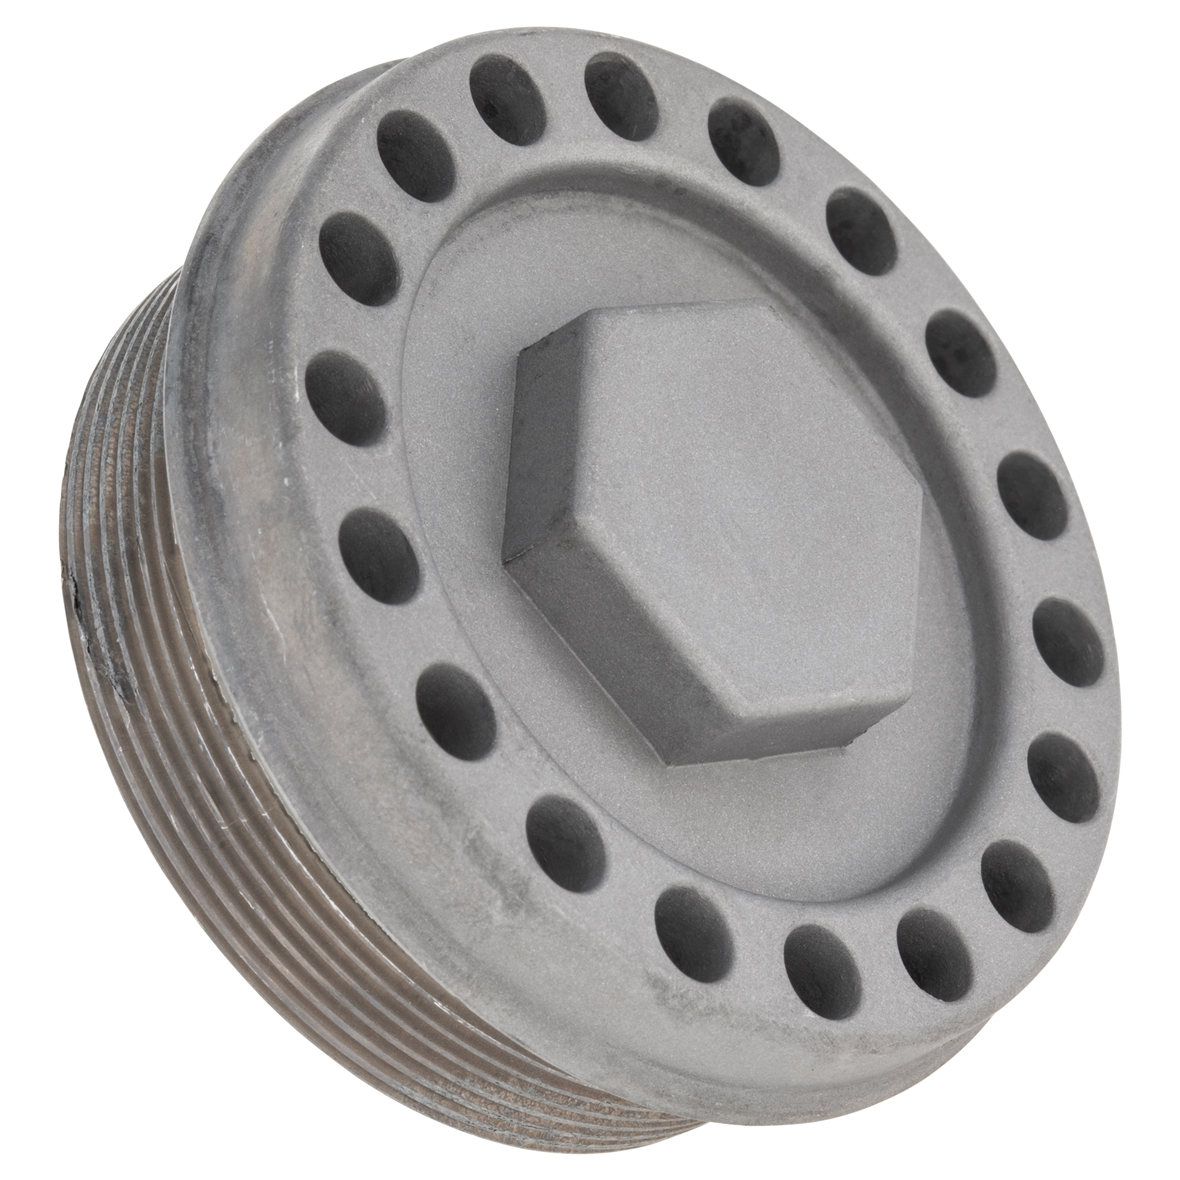 Product Image for 'Oil Filter Cover PIAGGIOTitle'